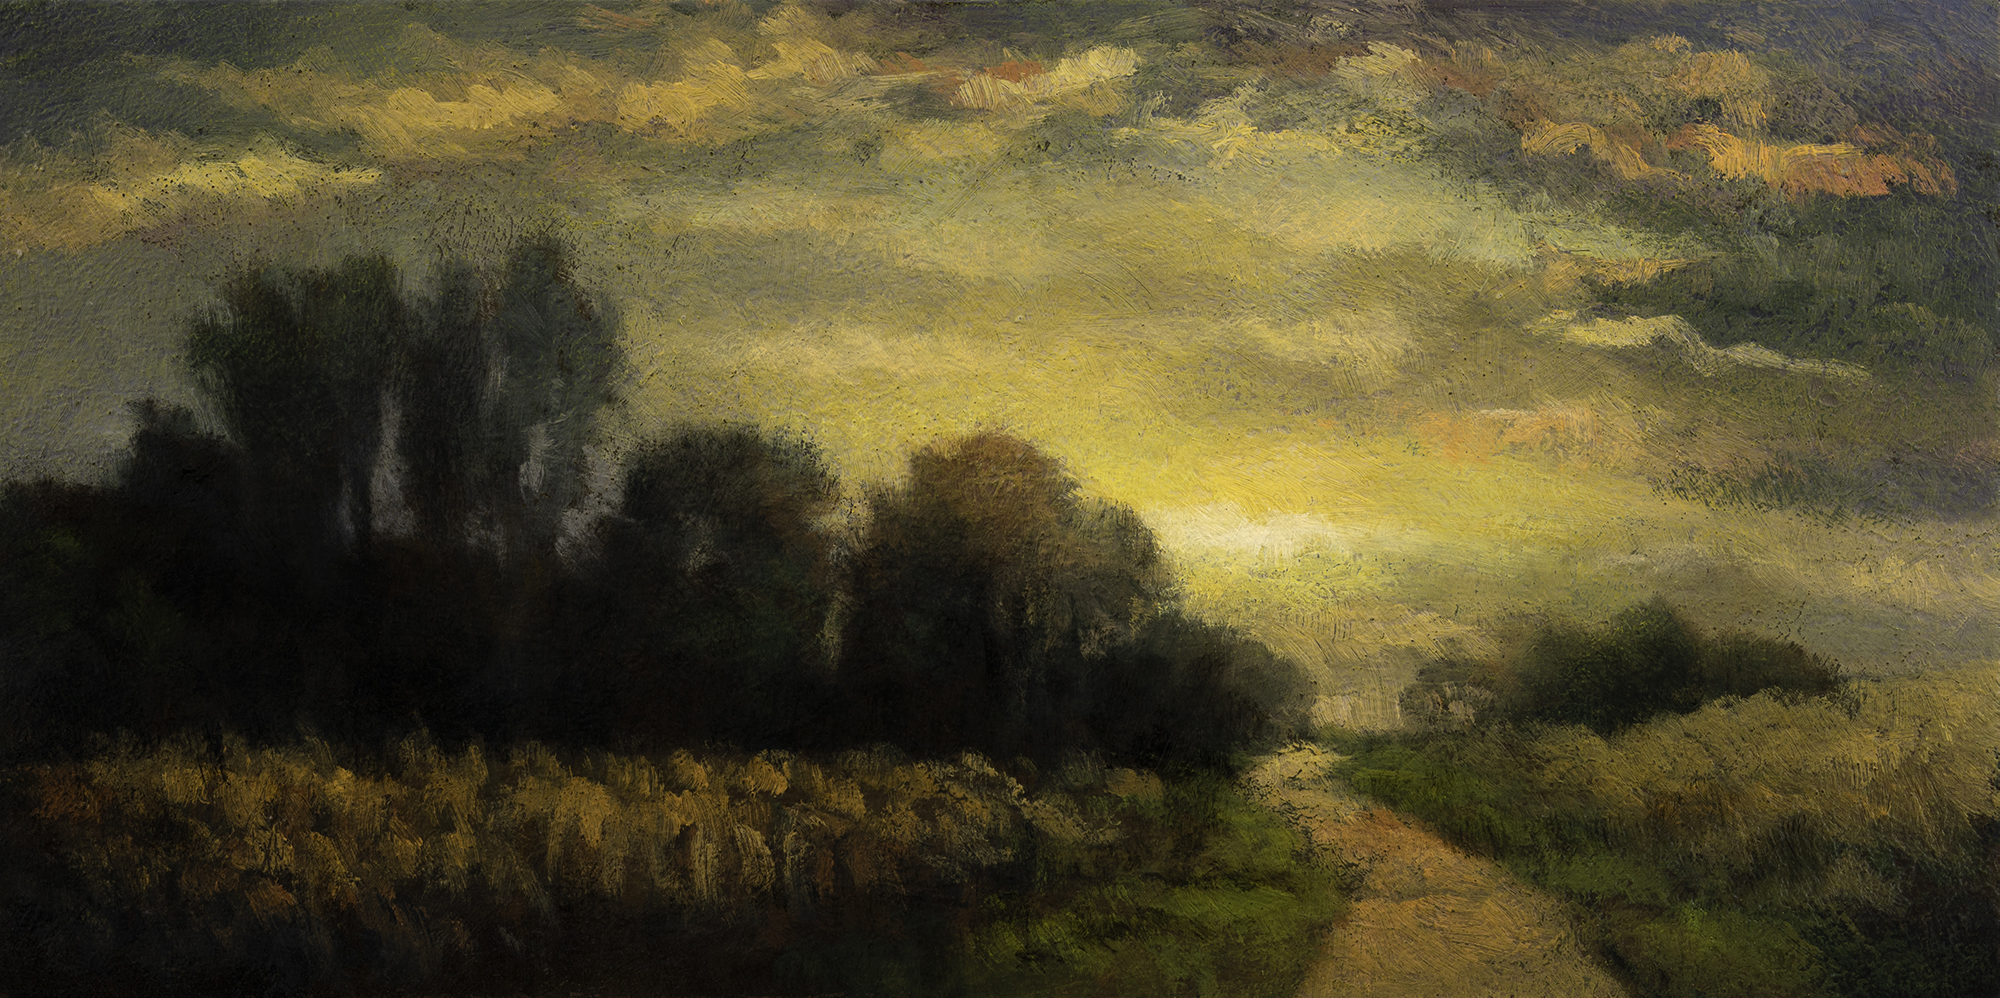 Evening Haze by M Francis McCarthy - 5x10 Oil on Wood Panel